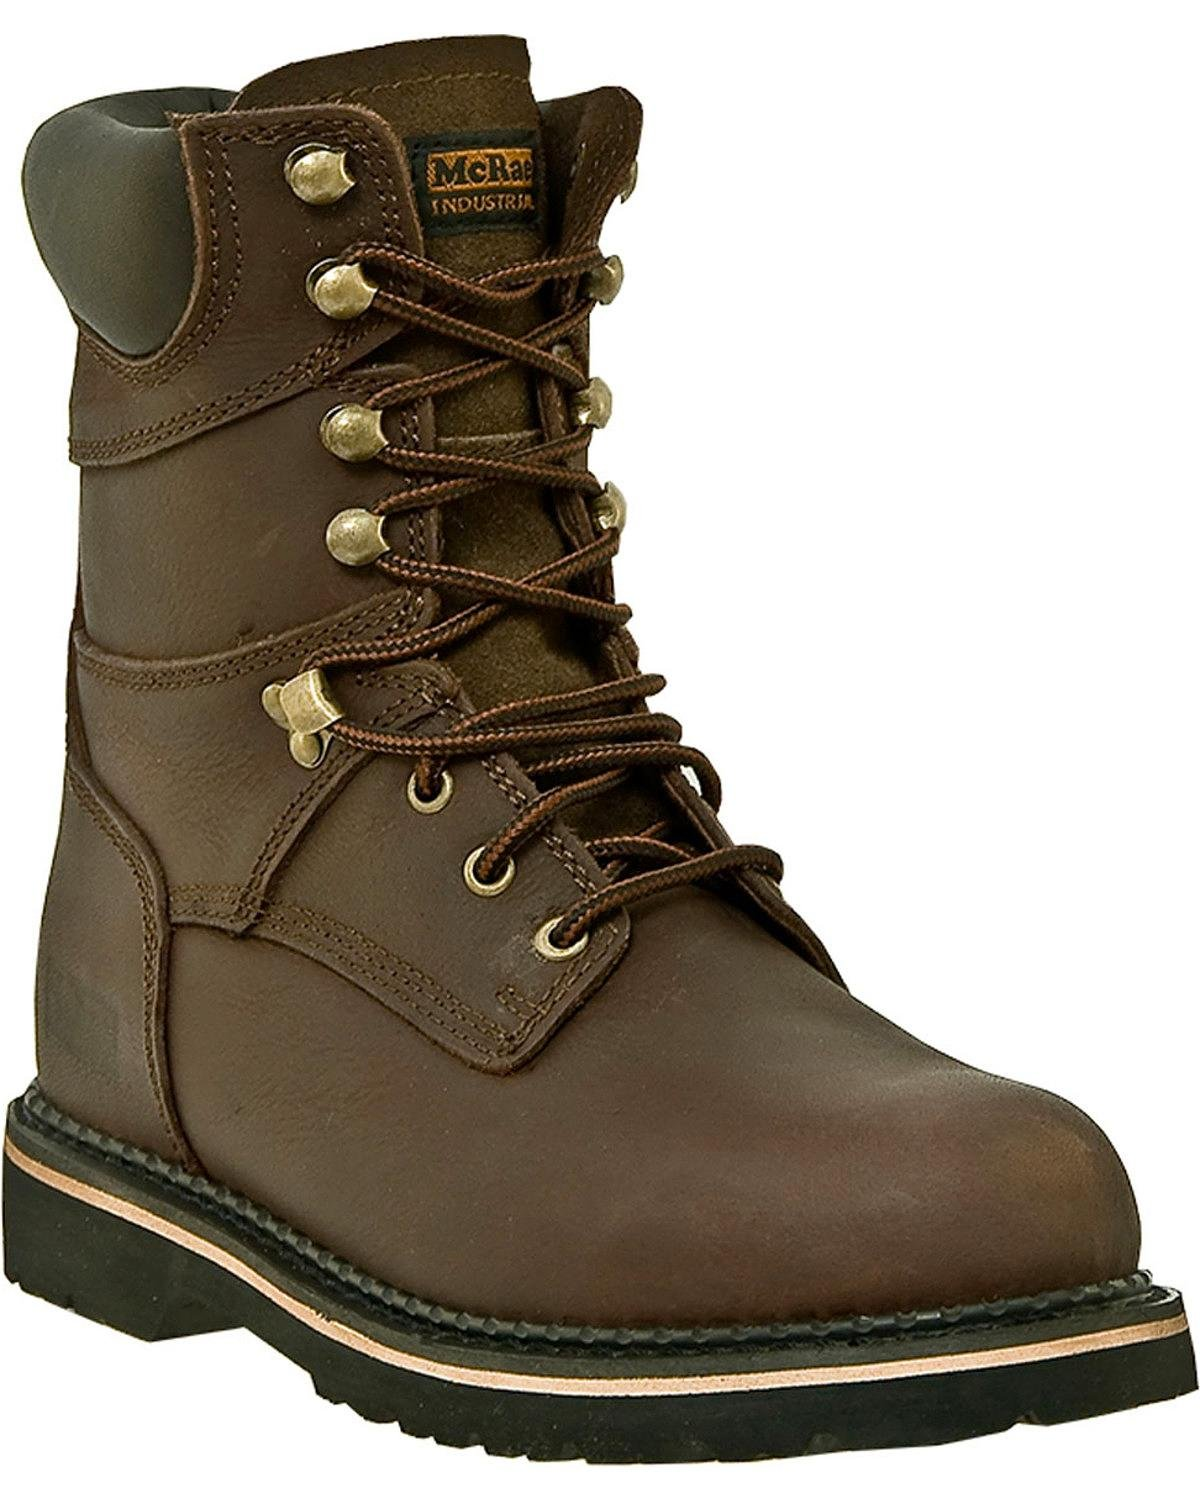 Men's McRae Industrial 8'' Safety Toe Lace-up Boots, Dark Brown, 16 2E